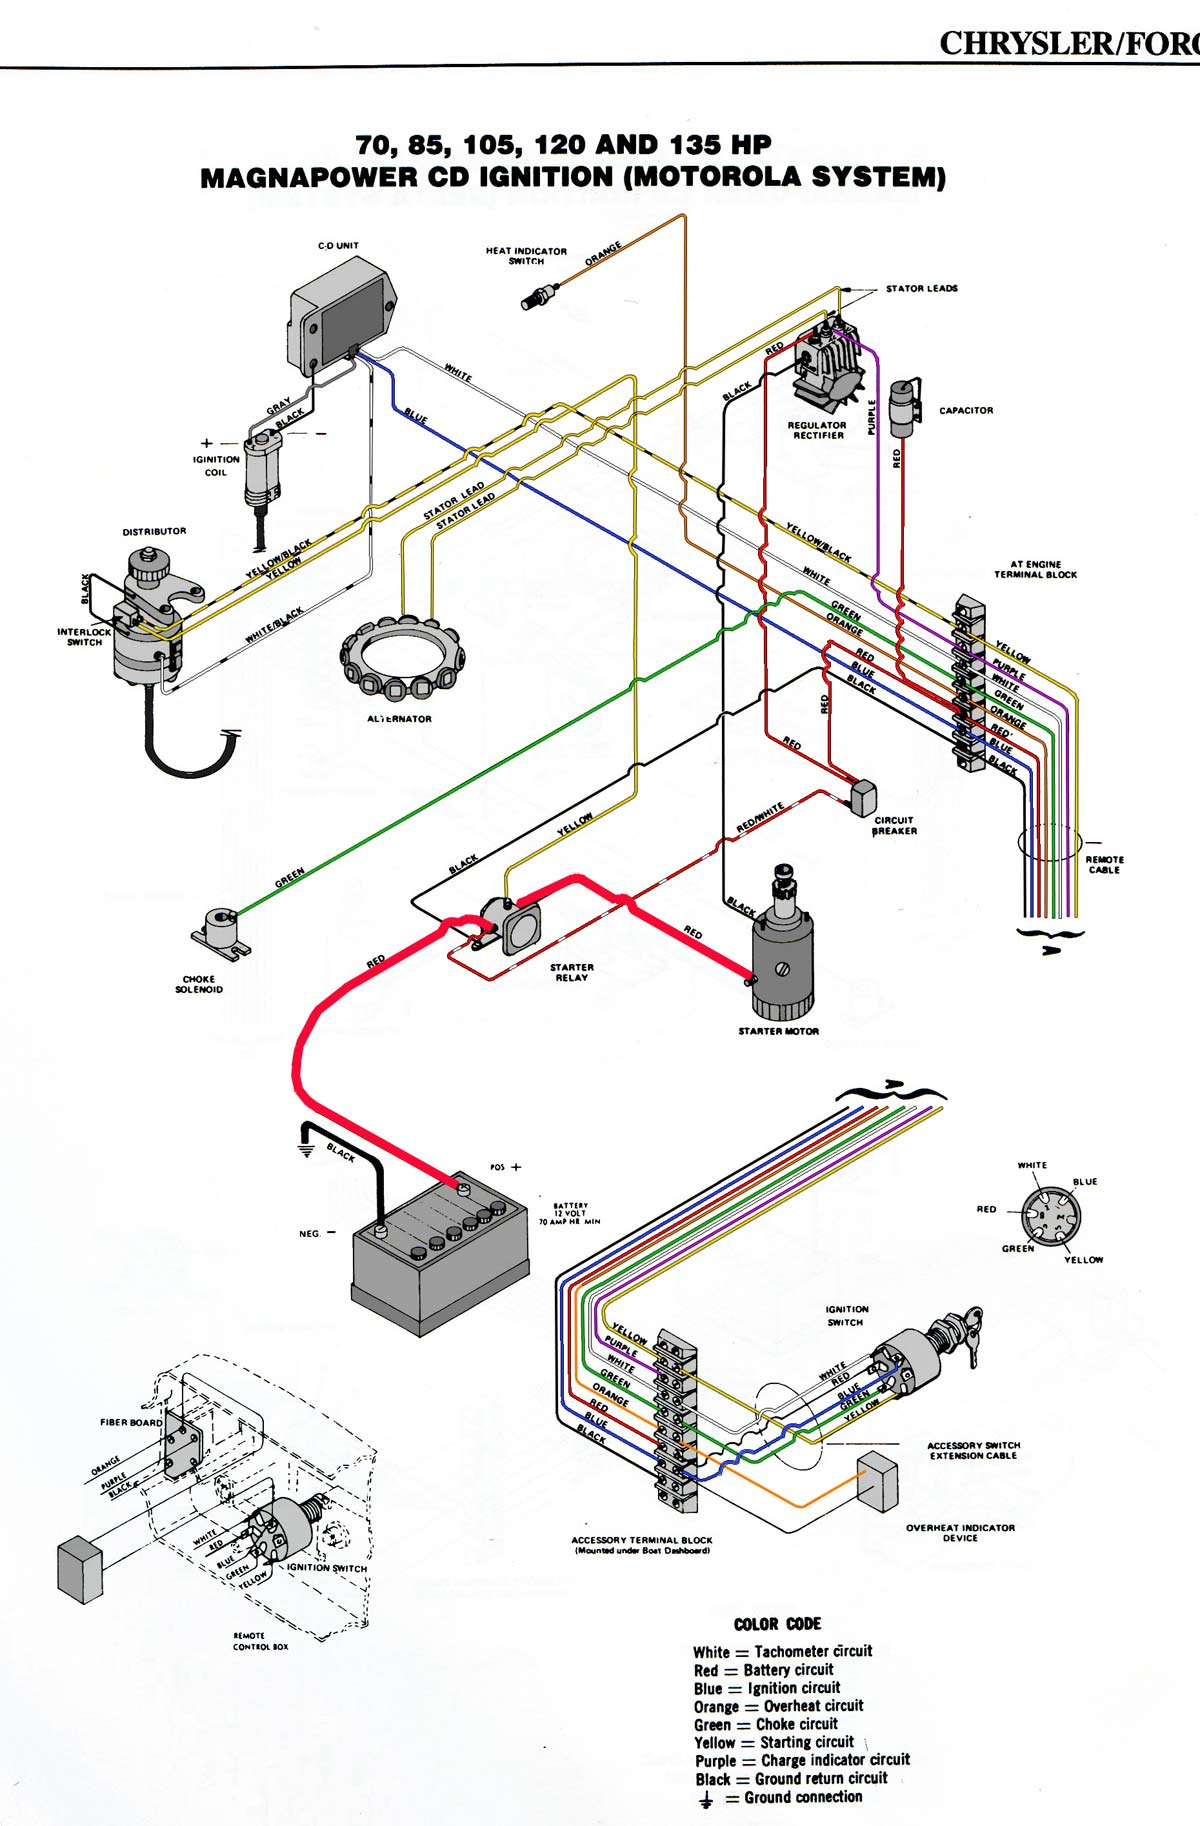 wiring_Chrysler_4cyl_Motorola boat wiring diagram outboard wiring diagram and schematic design outboard motor wiring diagram at nearapp.co